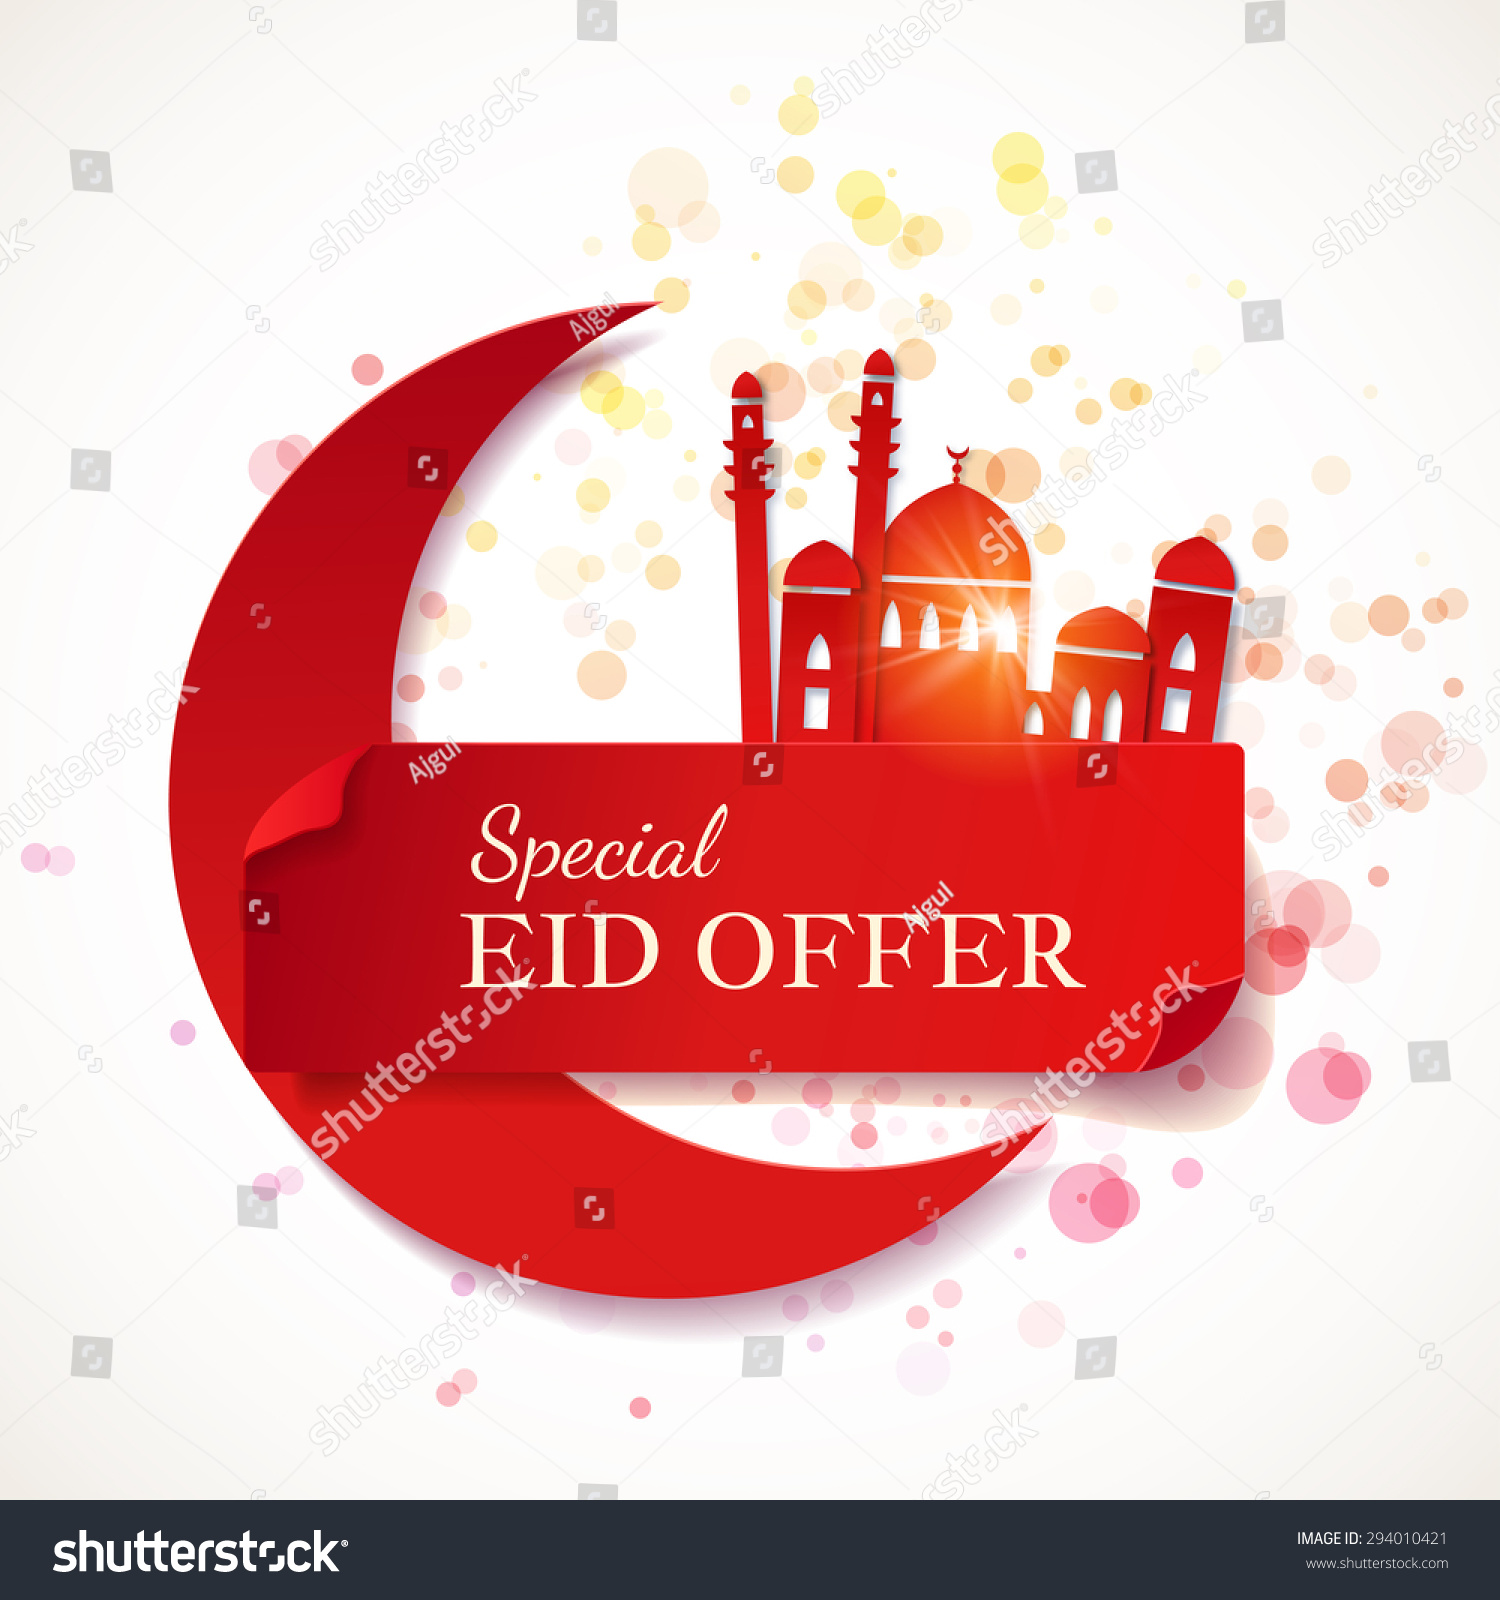 special eid offer eid mubarak banner stock vector  special eid offer eid mubarak banner poster flyer or banner paper